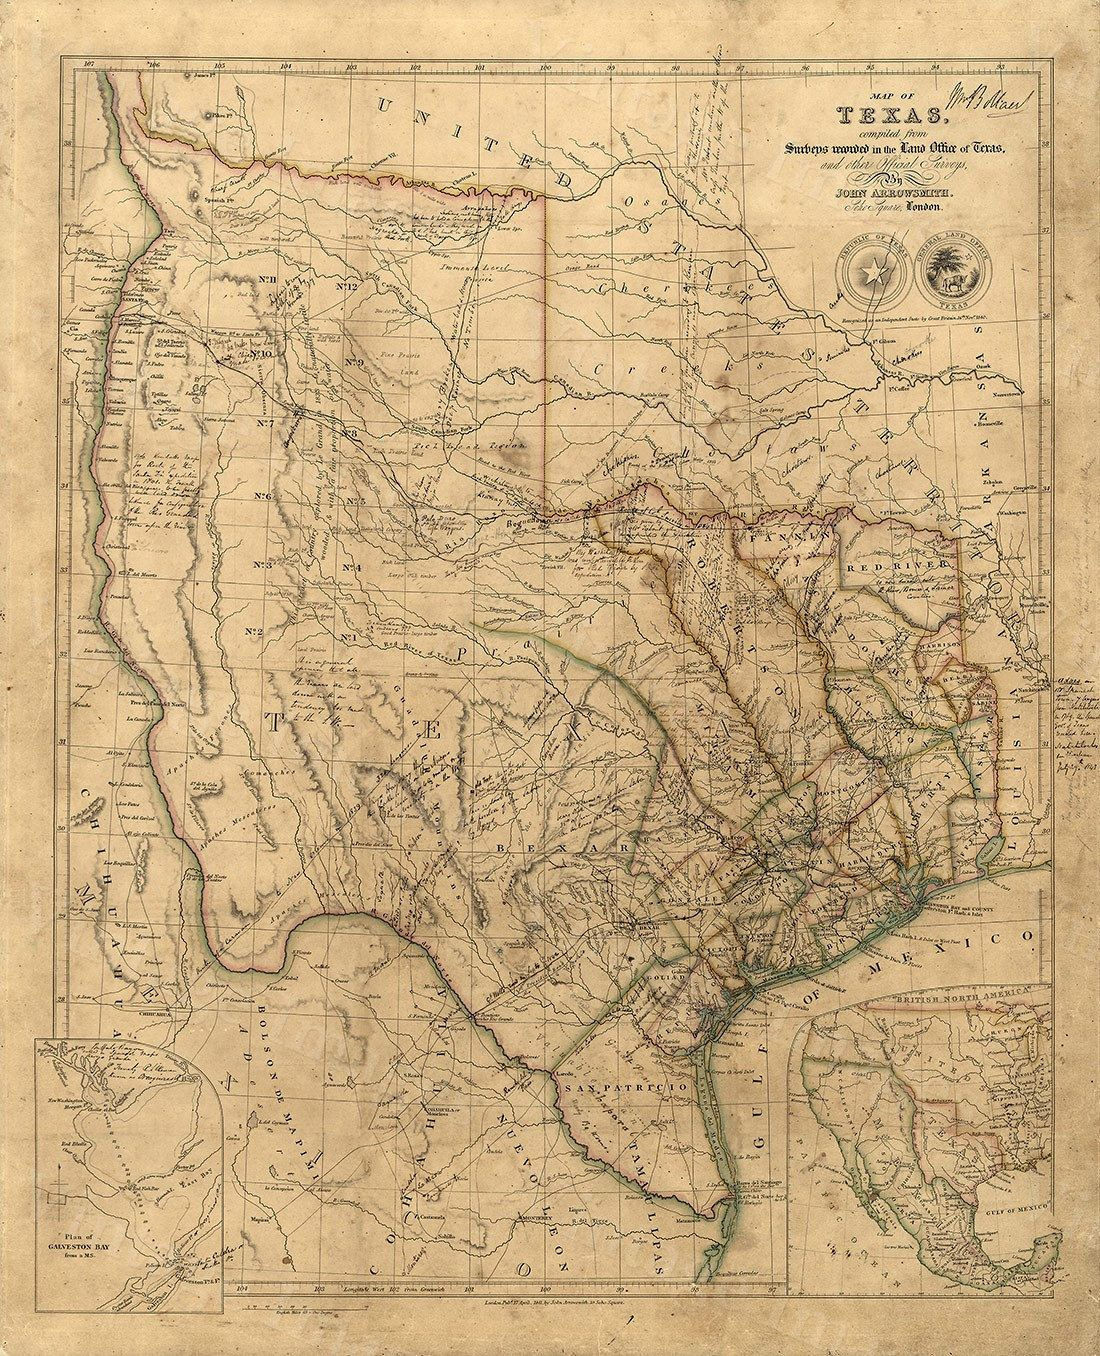 Old Texas Wall Map 1841 Historical Texas Map Antique Decorator Style - Megan's Law Texas Map